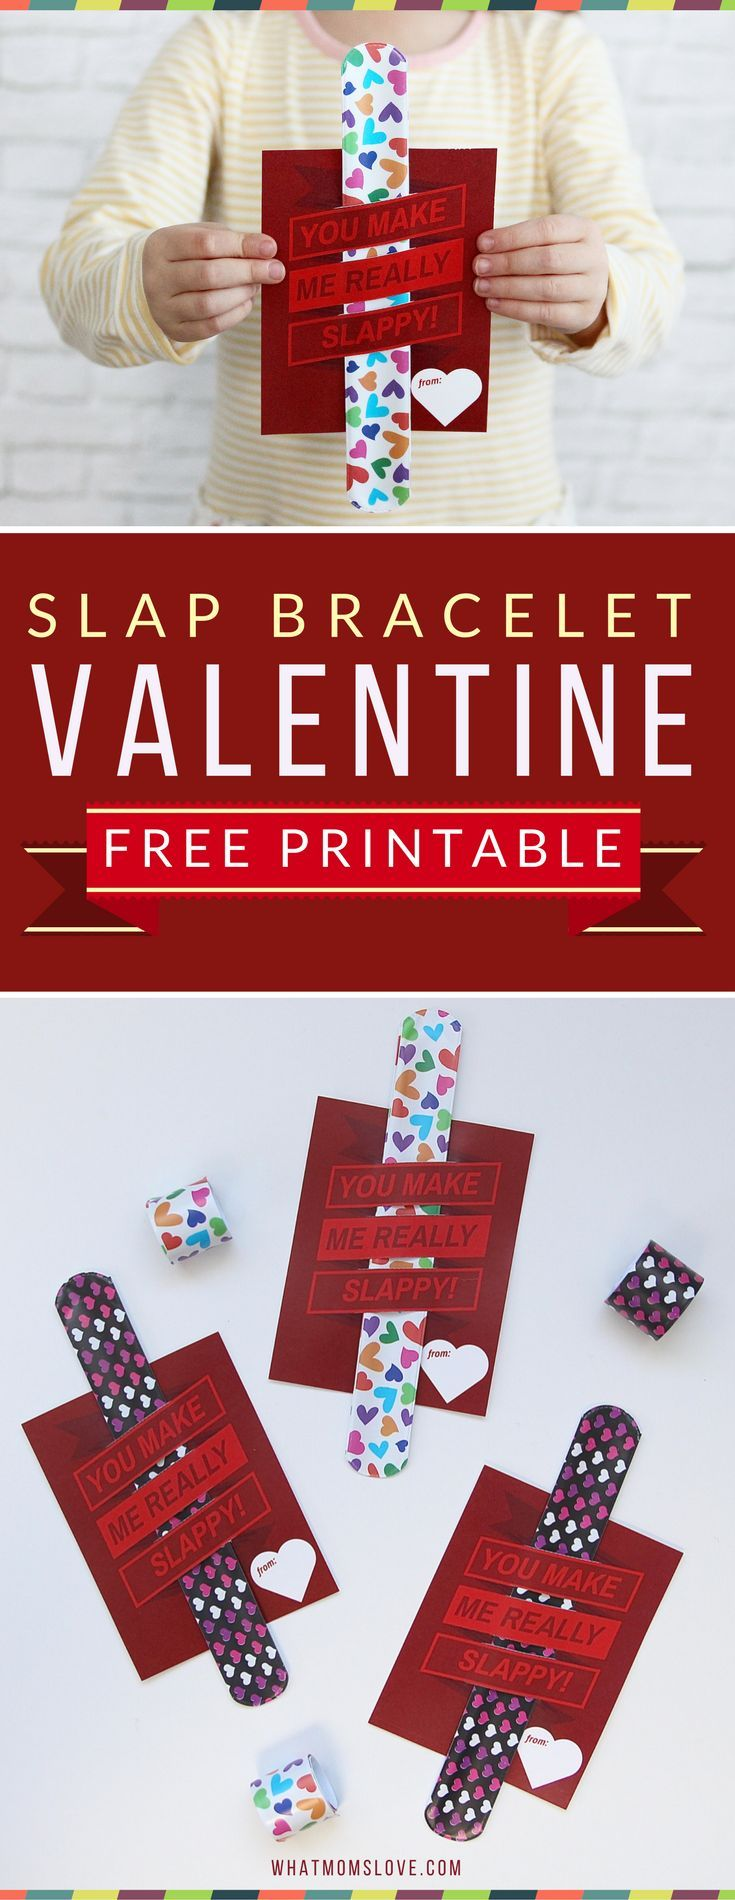 Non Candy Printable Valentines Day Card Perfect For The